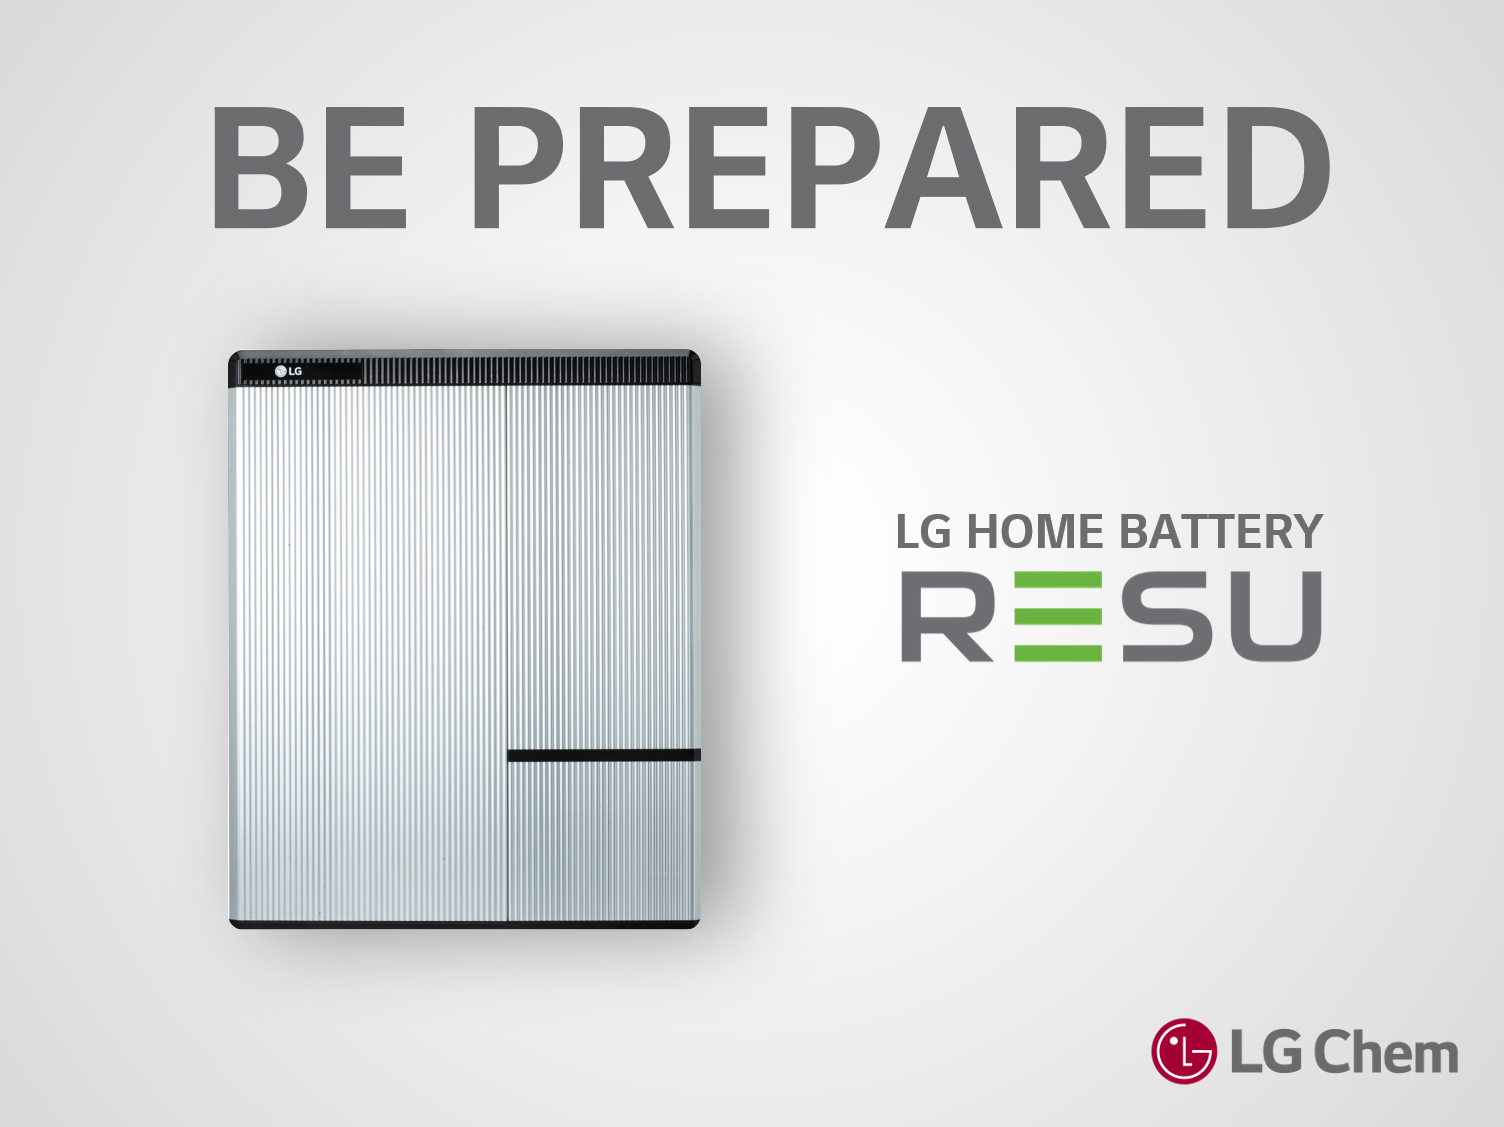 Be Prepared with the LG Home Battery